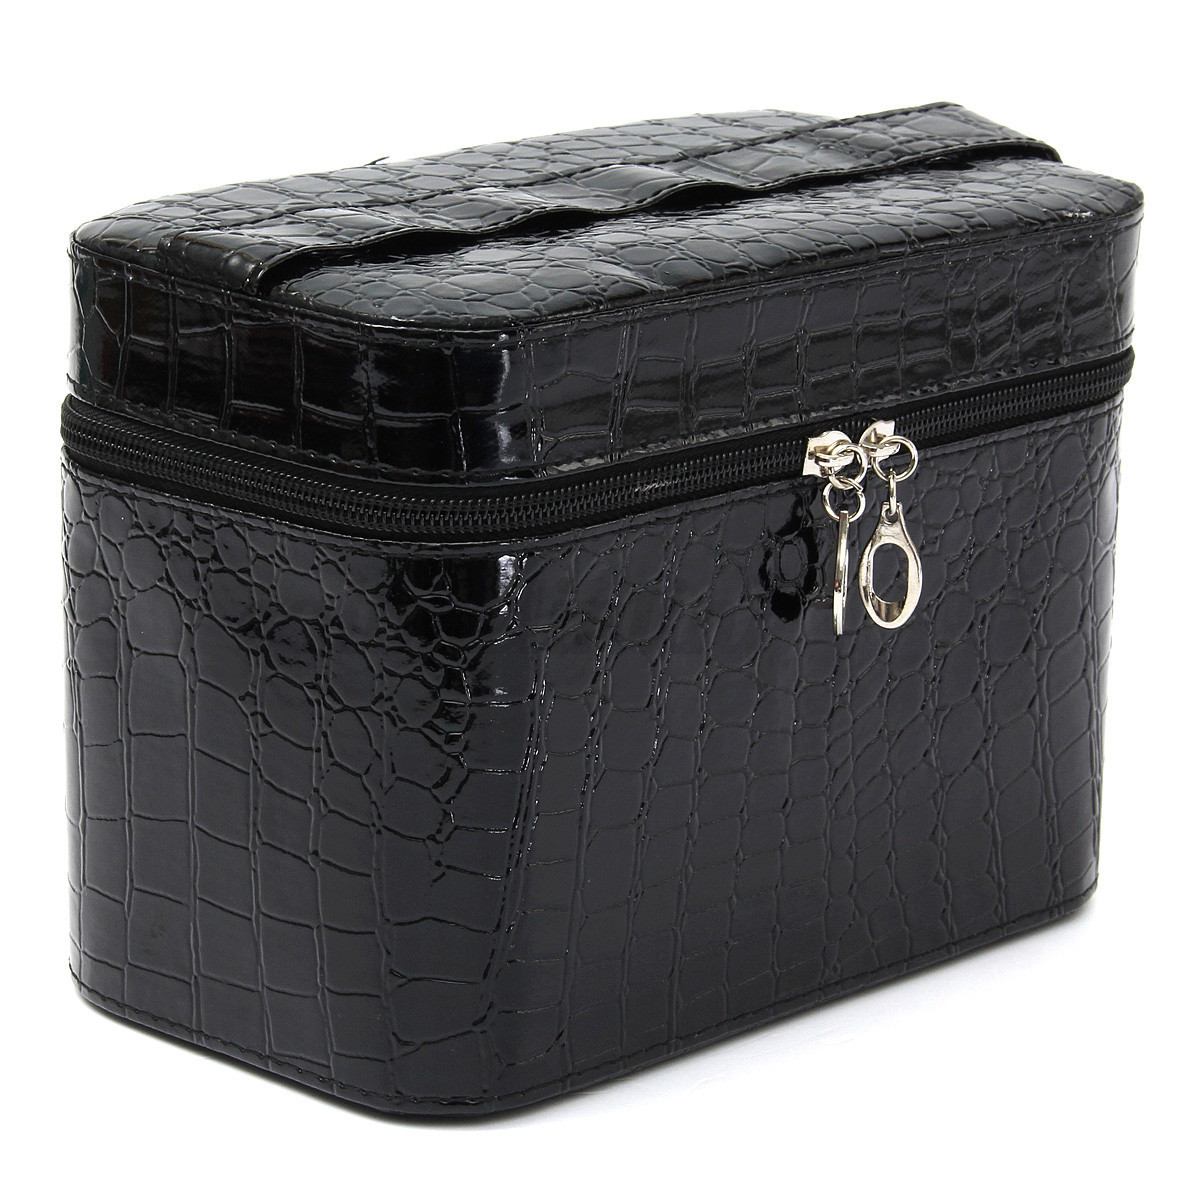 maquillage sac cuir croco bo te coffre pochette poche rangement trousse voyage ebay. Black Bedroom Furniture Sets. Home Design Ideas